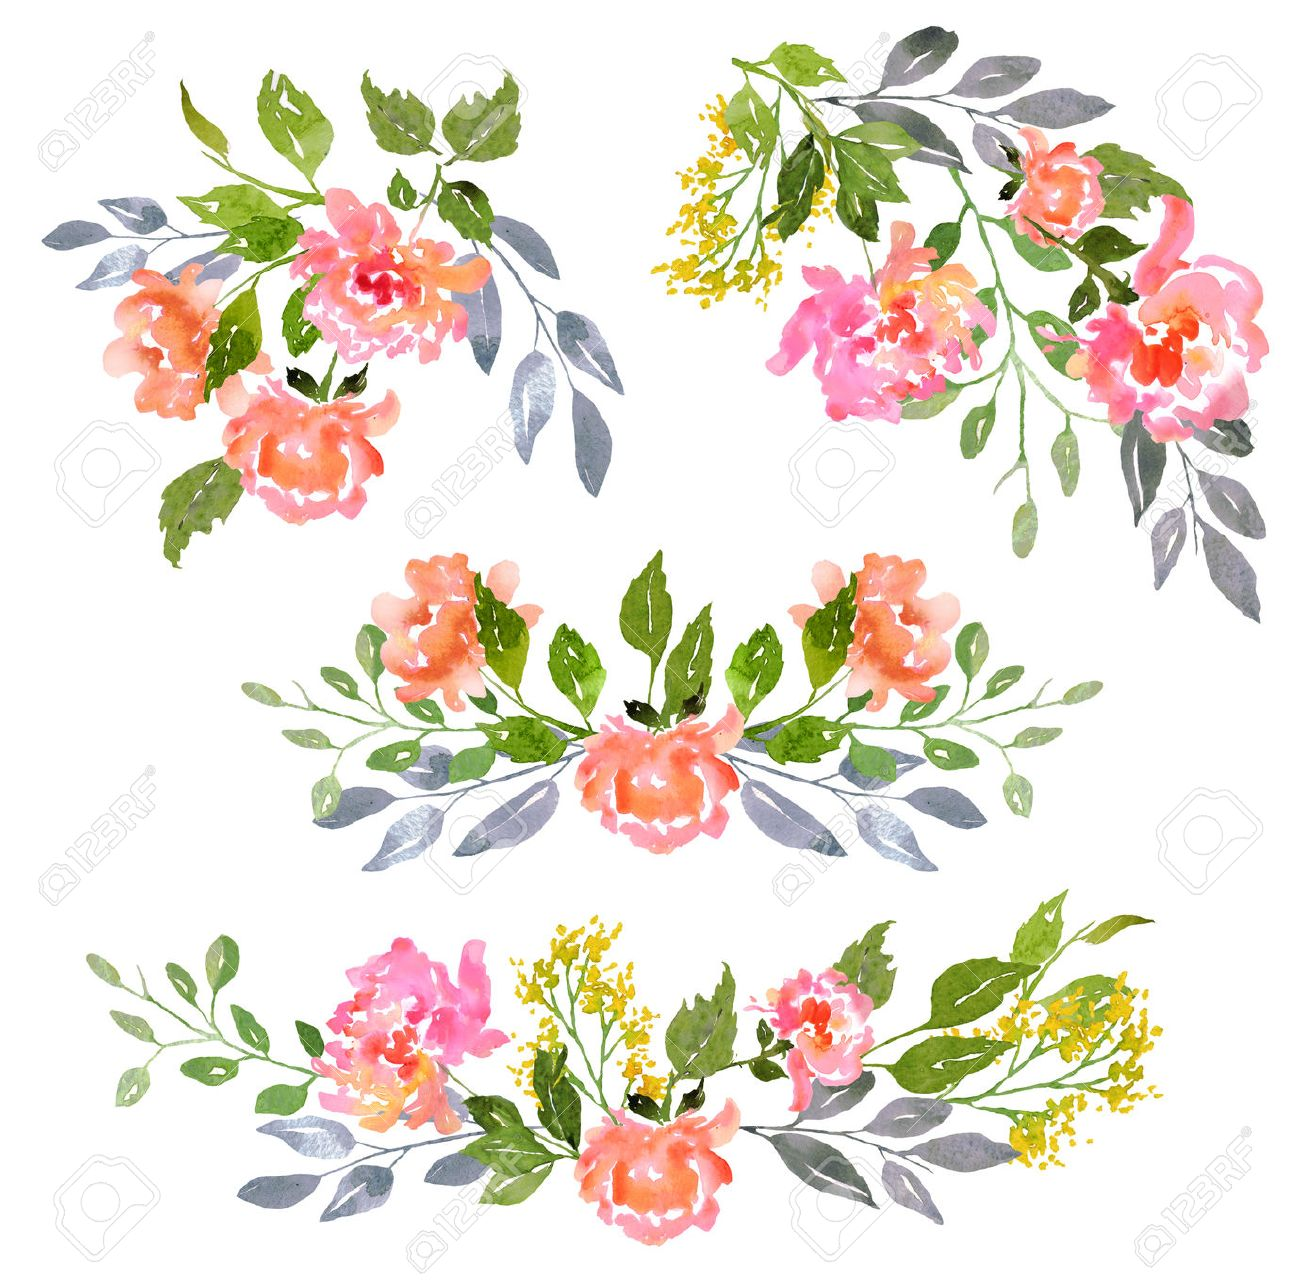 floral clip art with watercolor peonies illustration for greeting